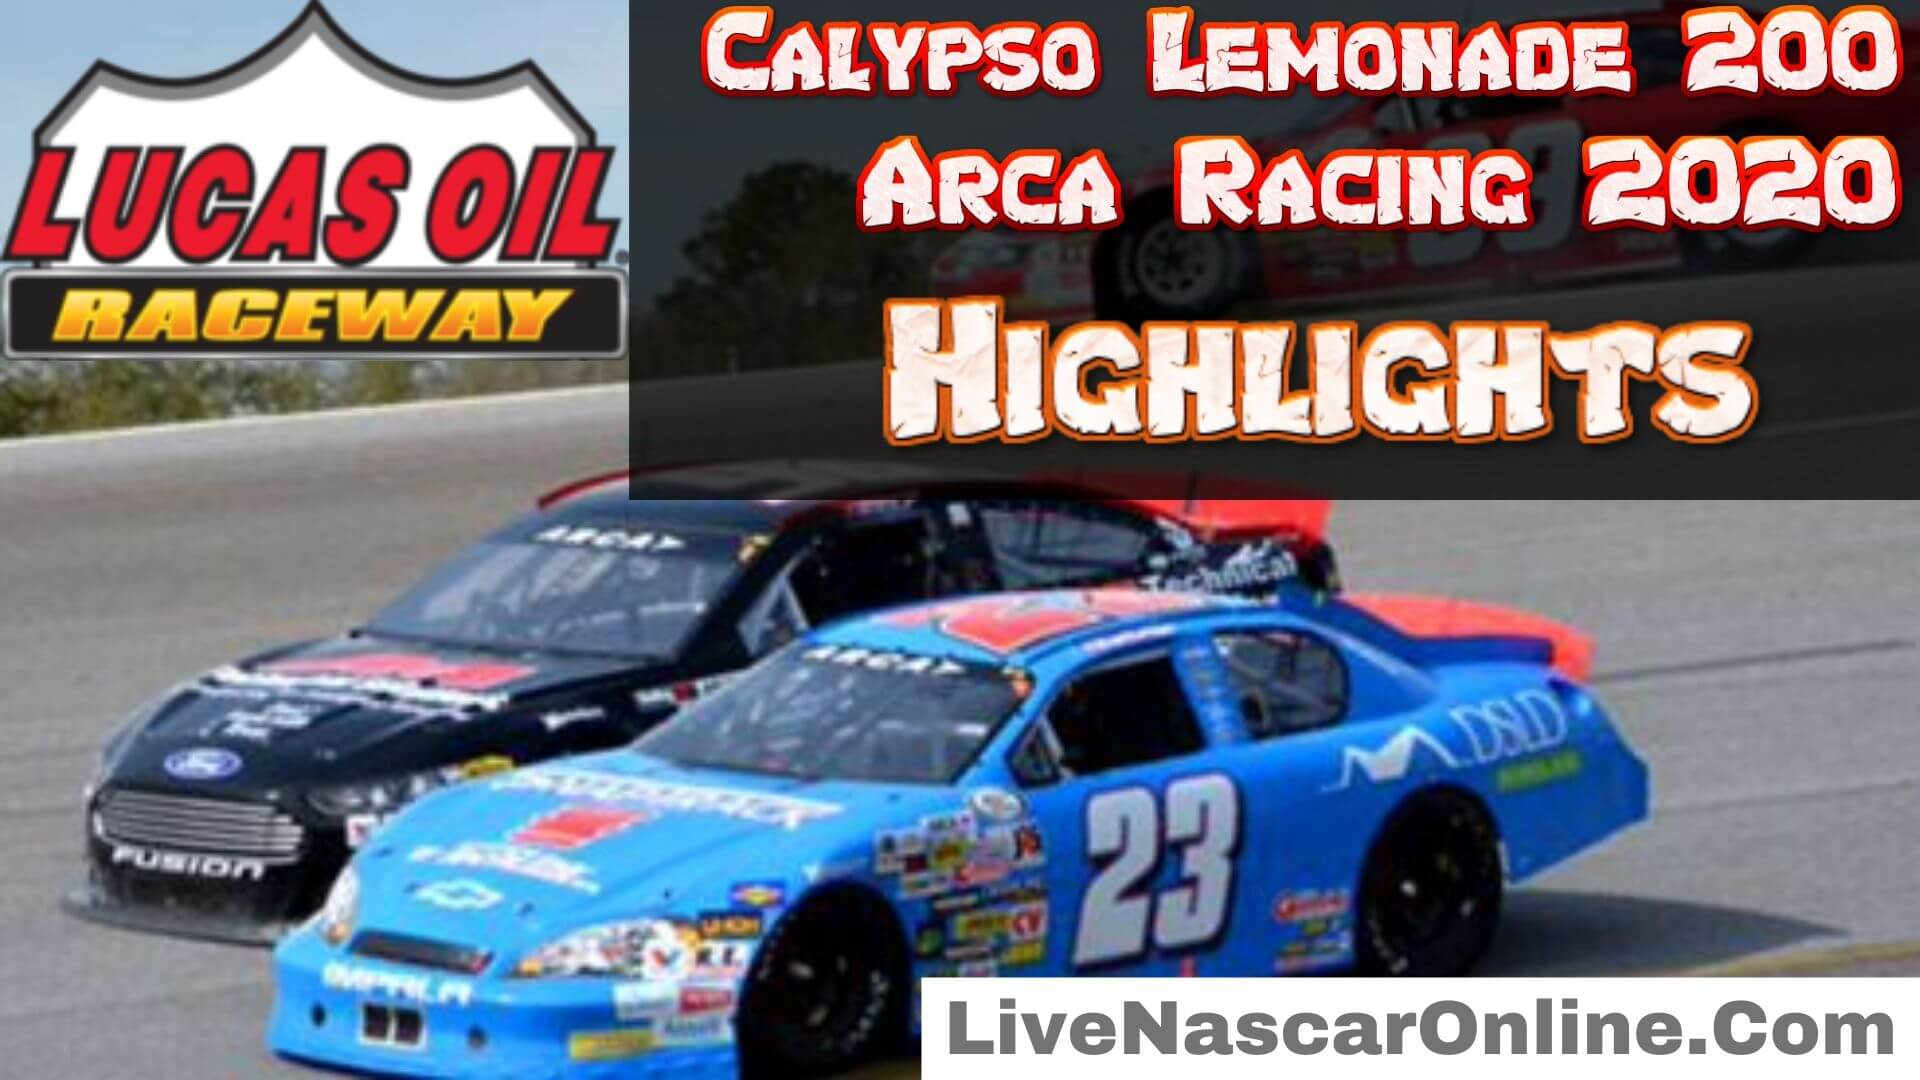 Calypso Lemonade 200 Arca 2020 Highlights